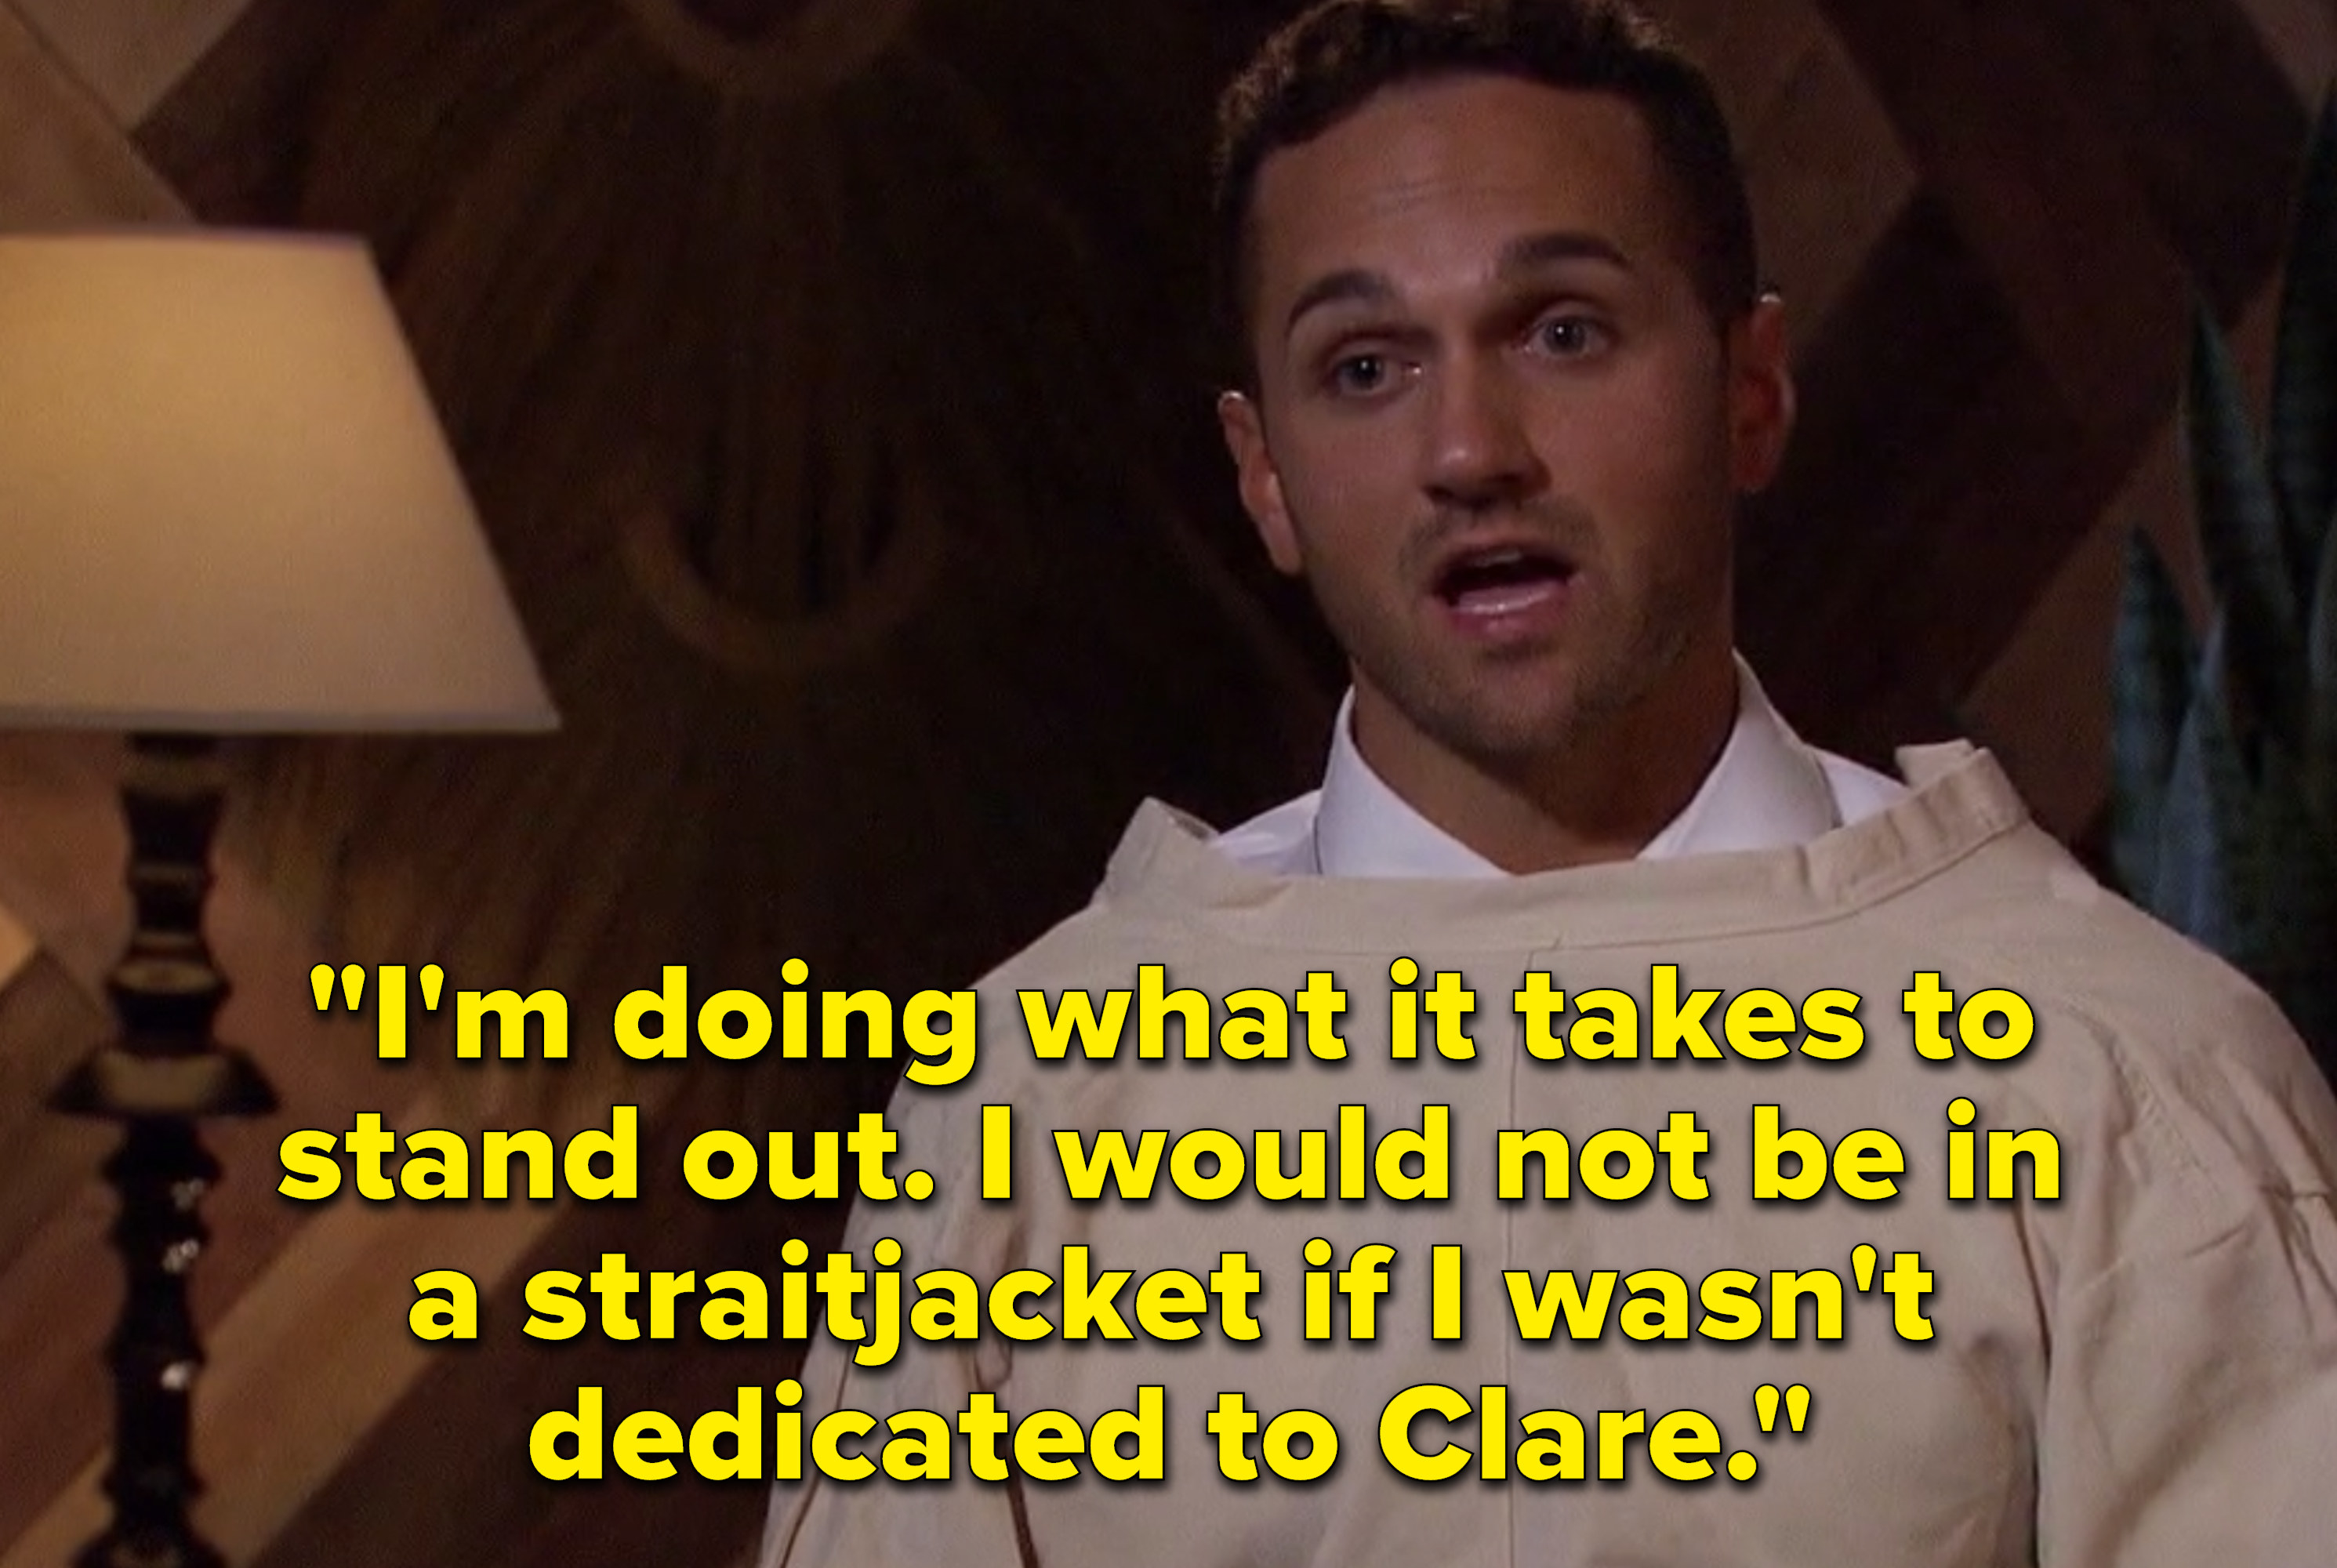 """Jay saying, """"I'm doing what it takes to stand out. I would not be in a straitjacket if I wasn't dedicated to Clare."""""""